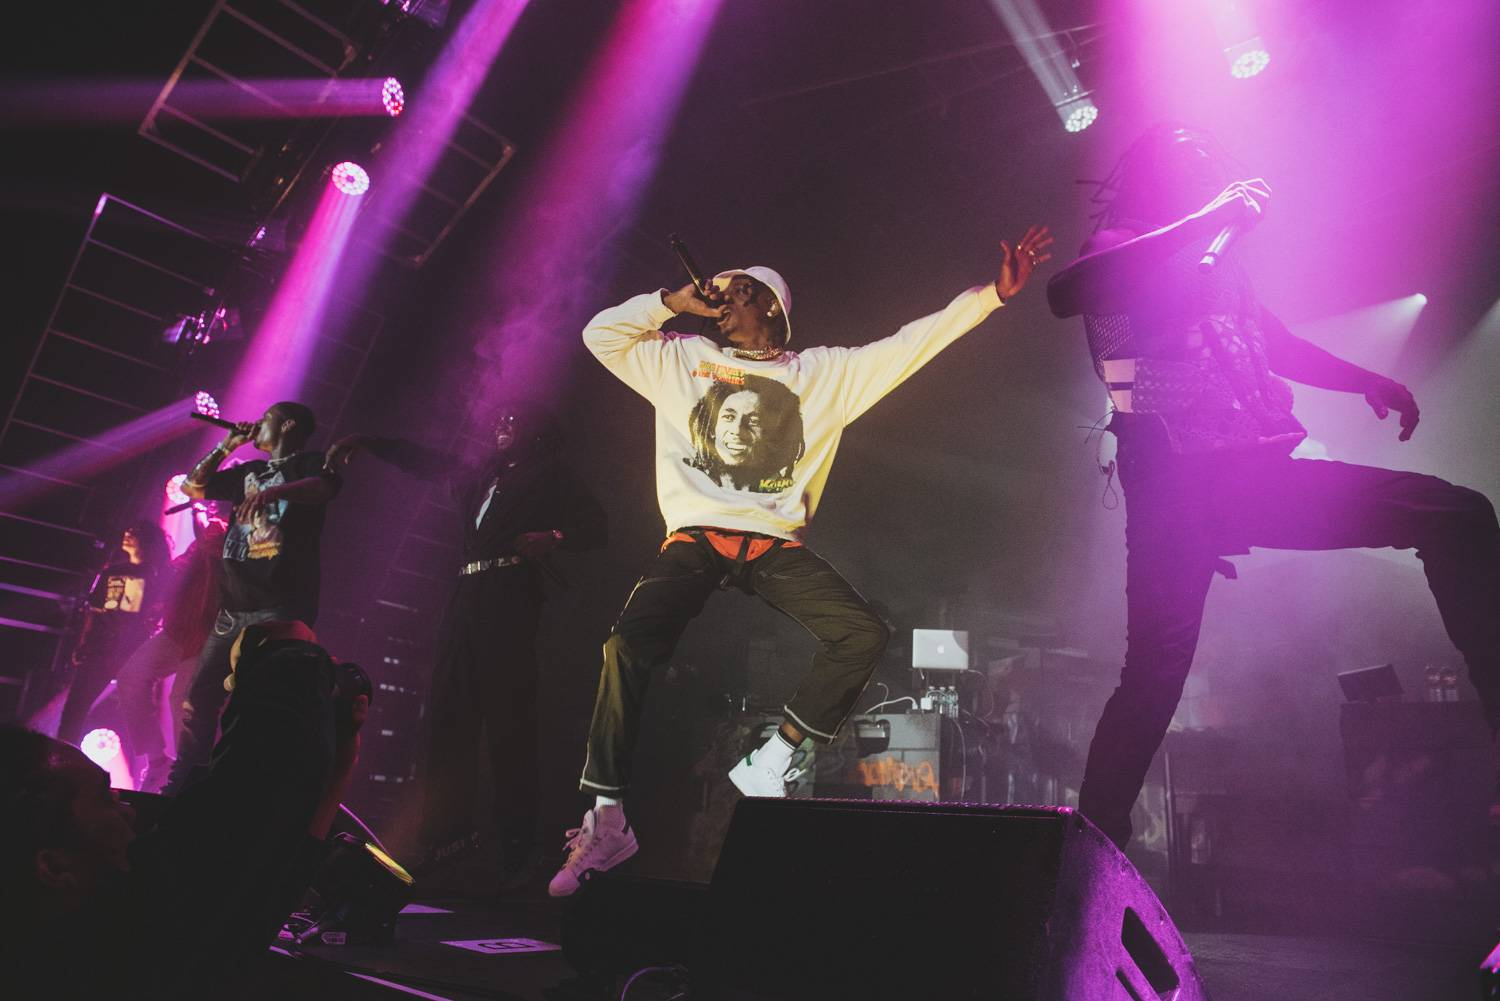 Joey Bada$$ and Flatbush Zombies at the PNE Forum, Vancouver, July 25 2019. Pavel Boiko photo.